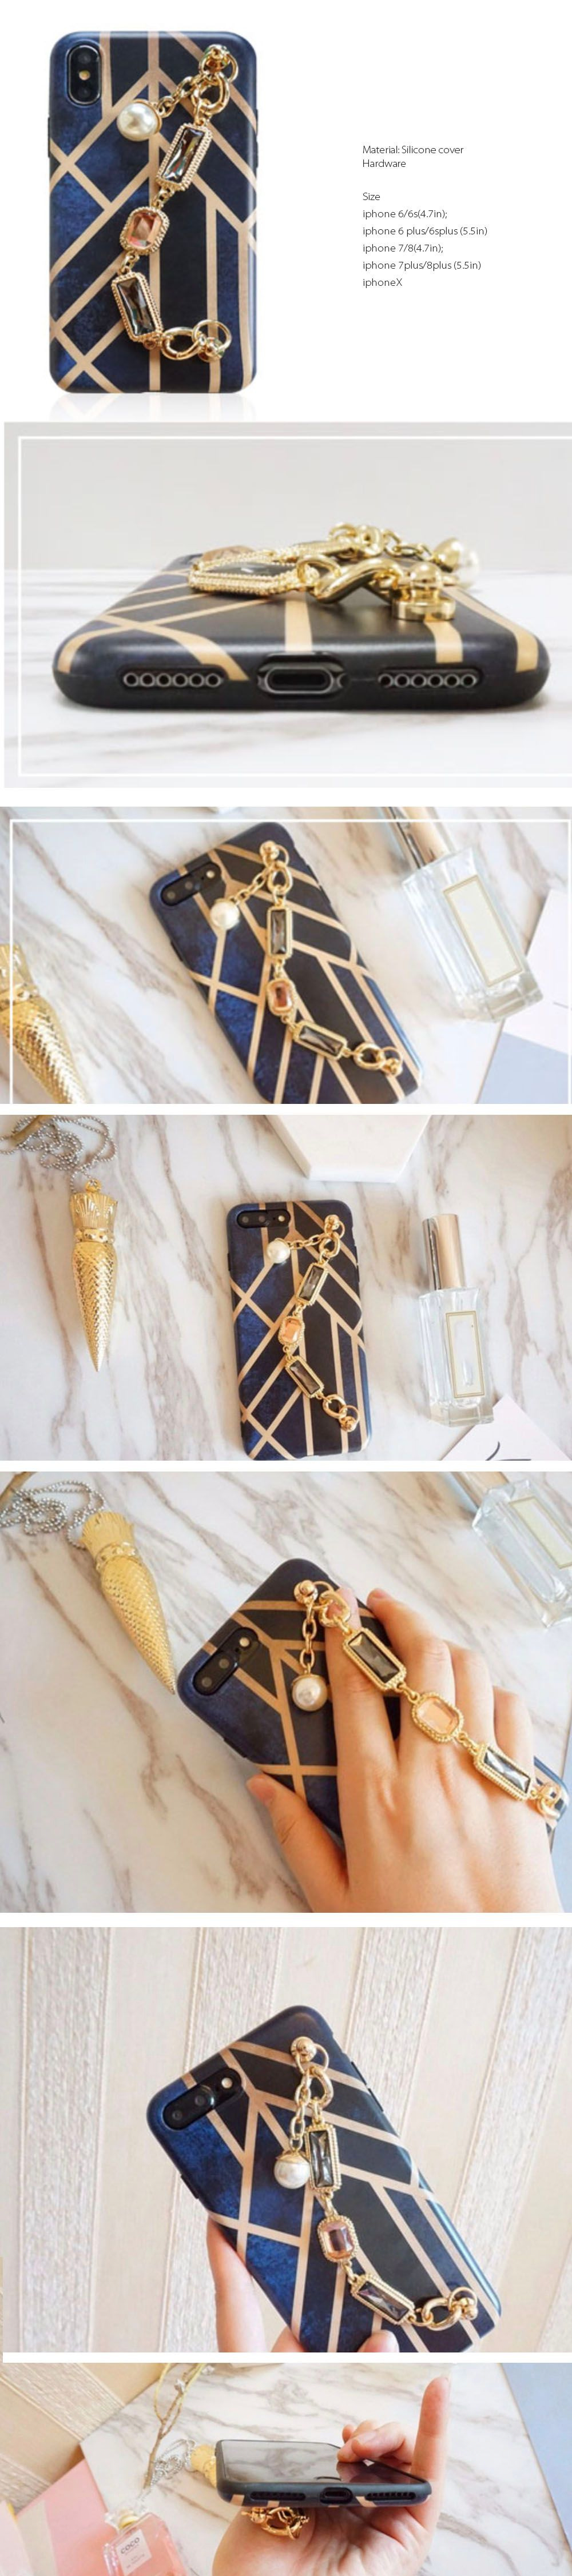 iPhone Case Protection for iPhone